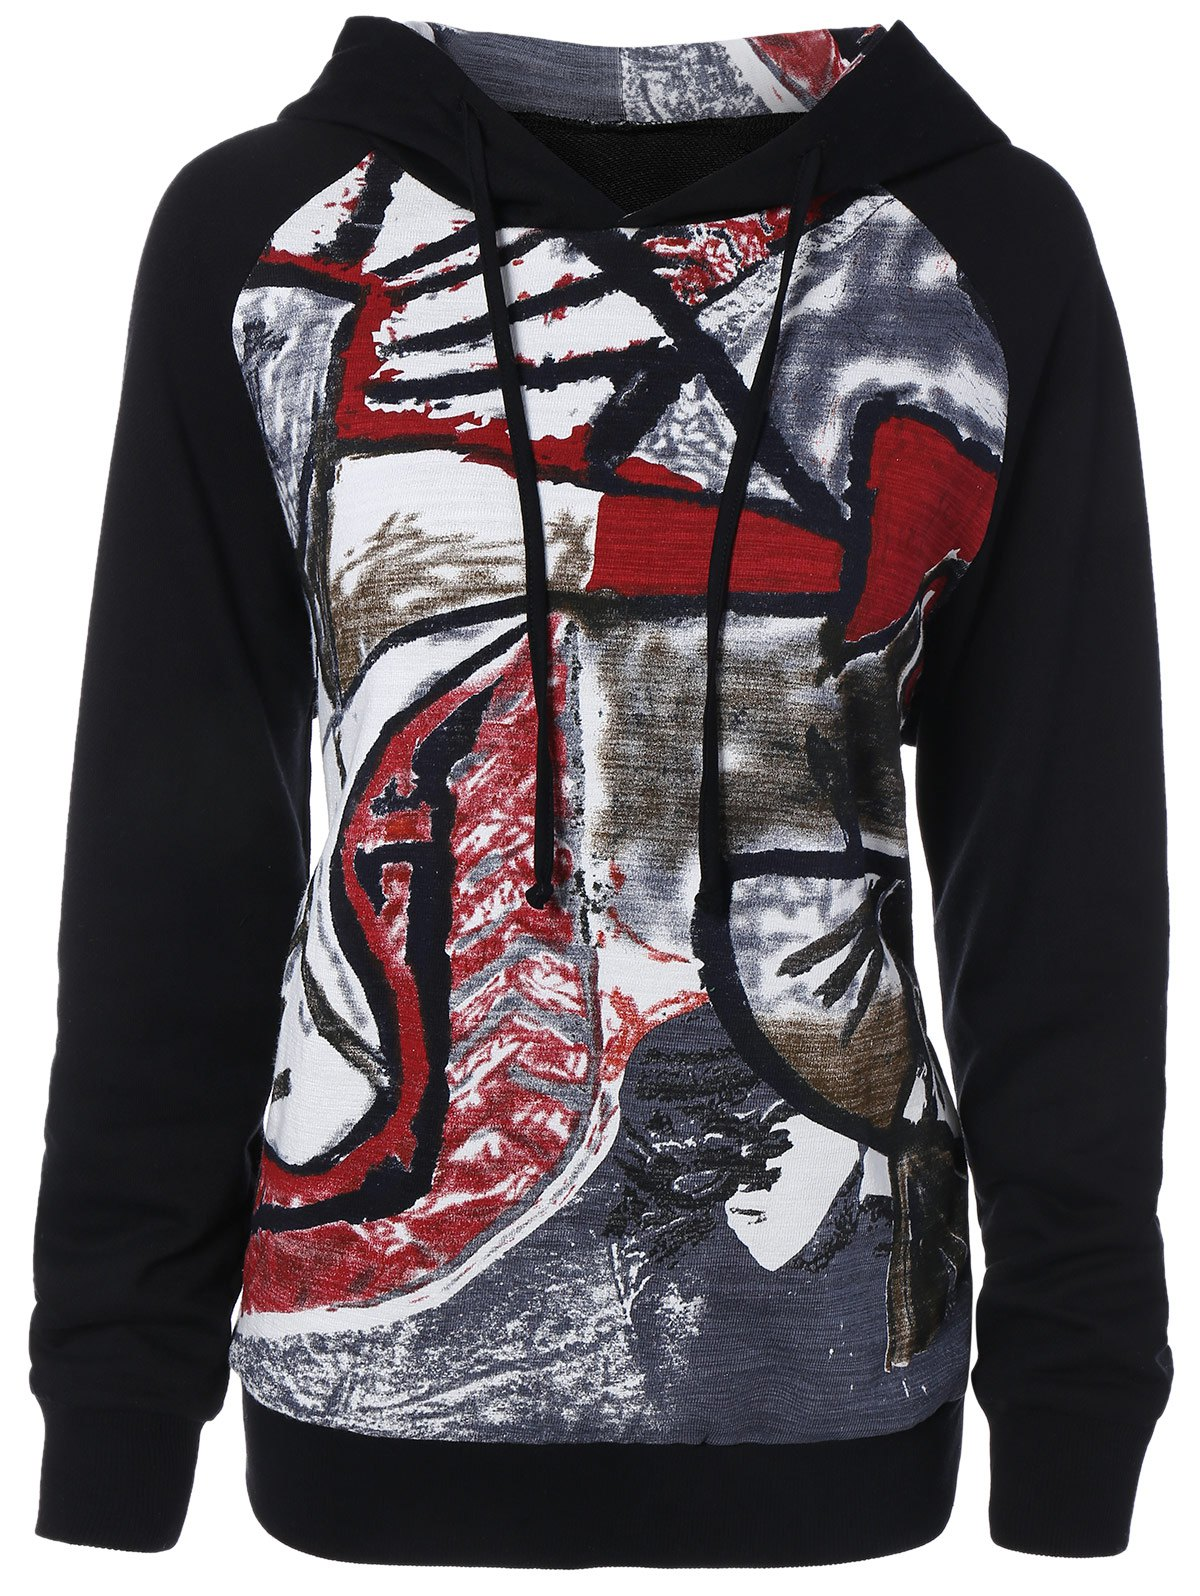 Graffiti Pattern Hoodie graffiti pattern splice sneakers